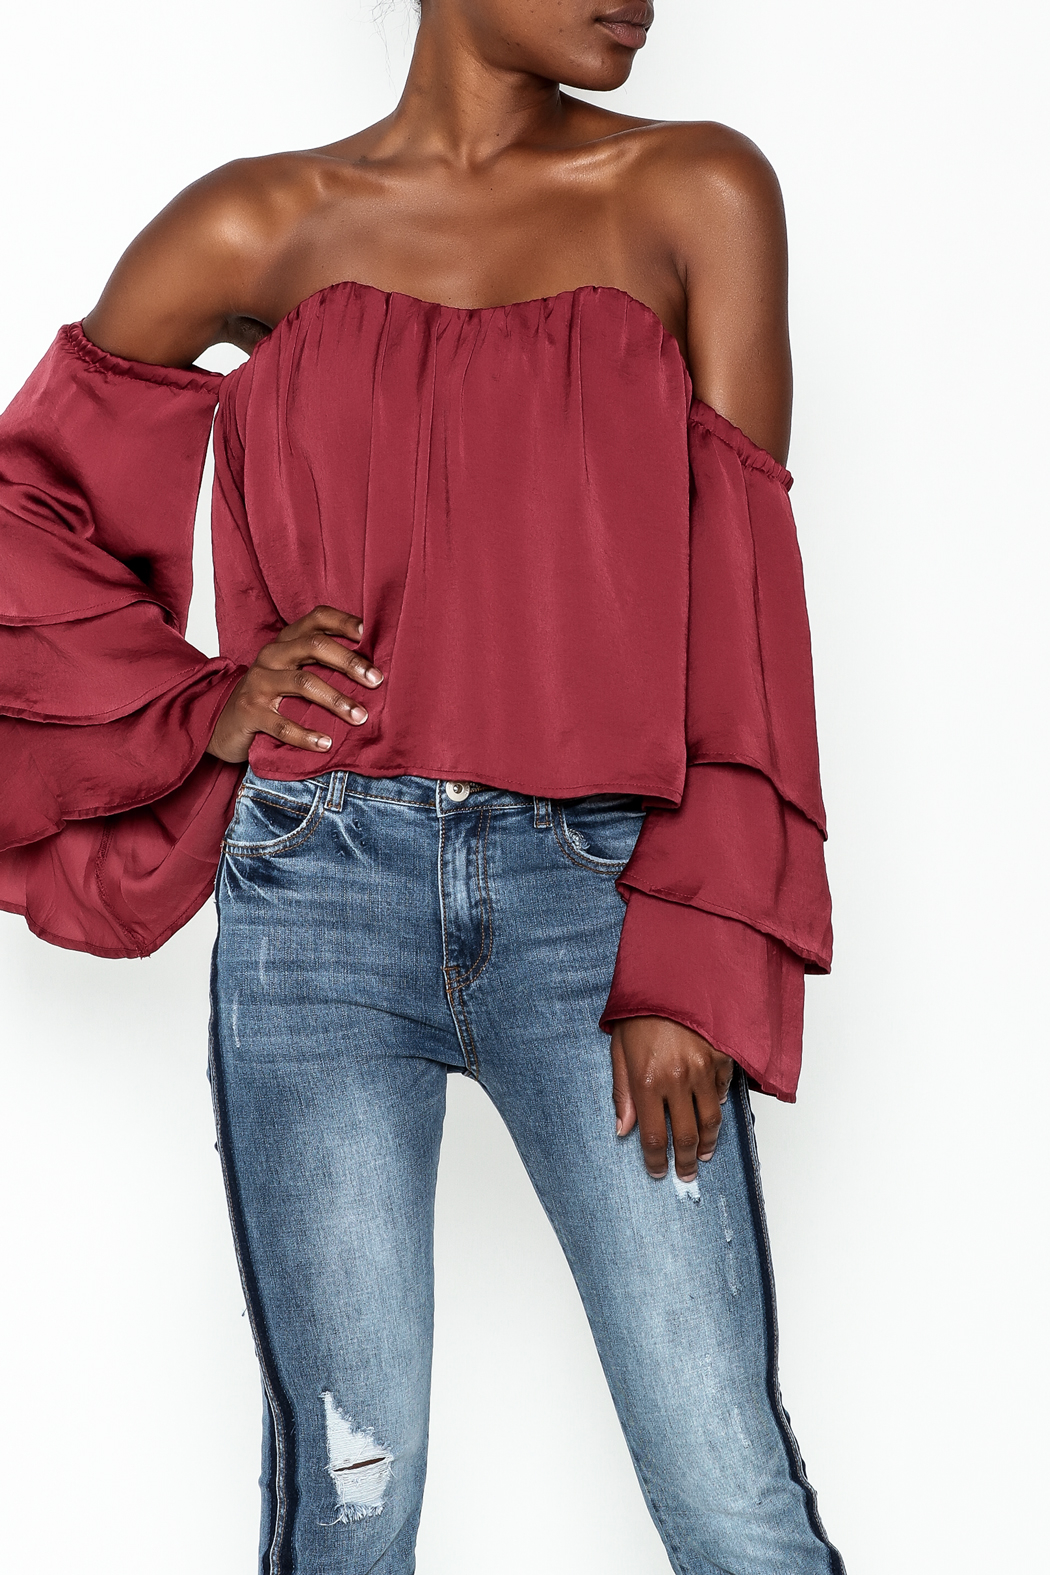 4Sienna Tiered Sleeve Satin Top - Front Cropped Image